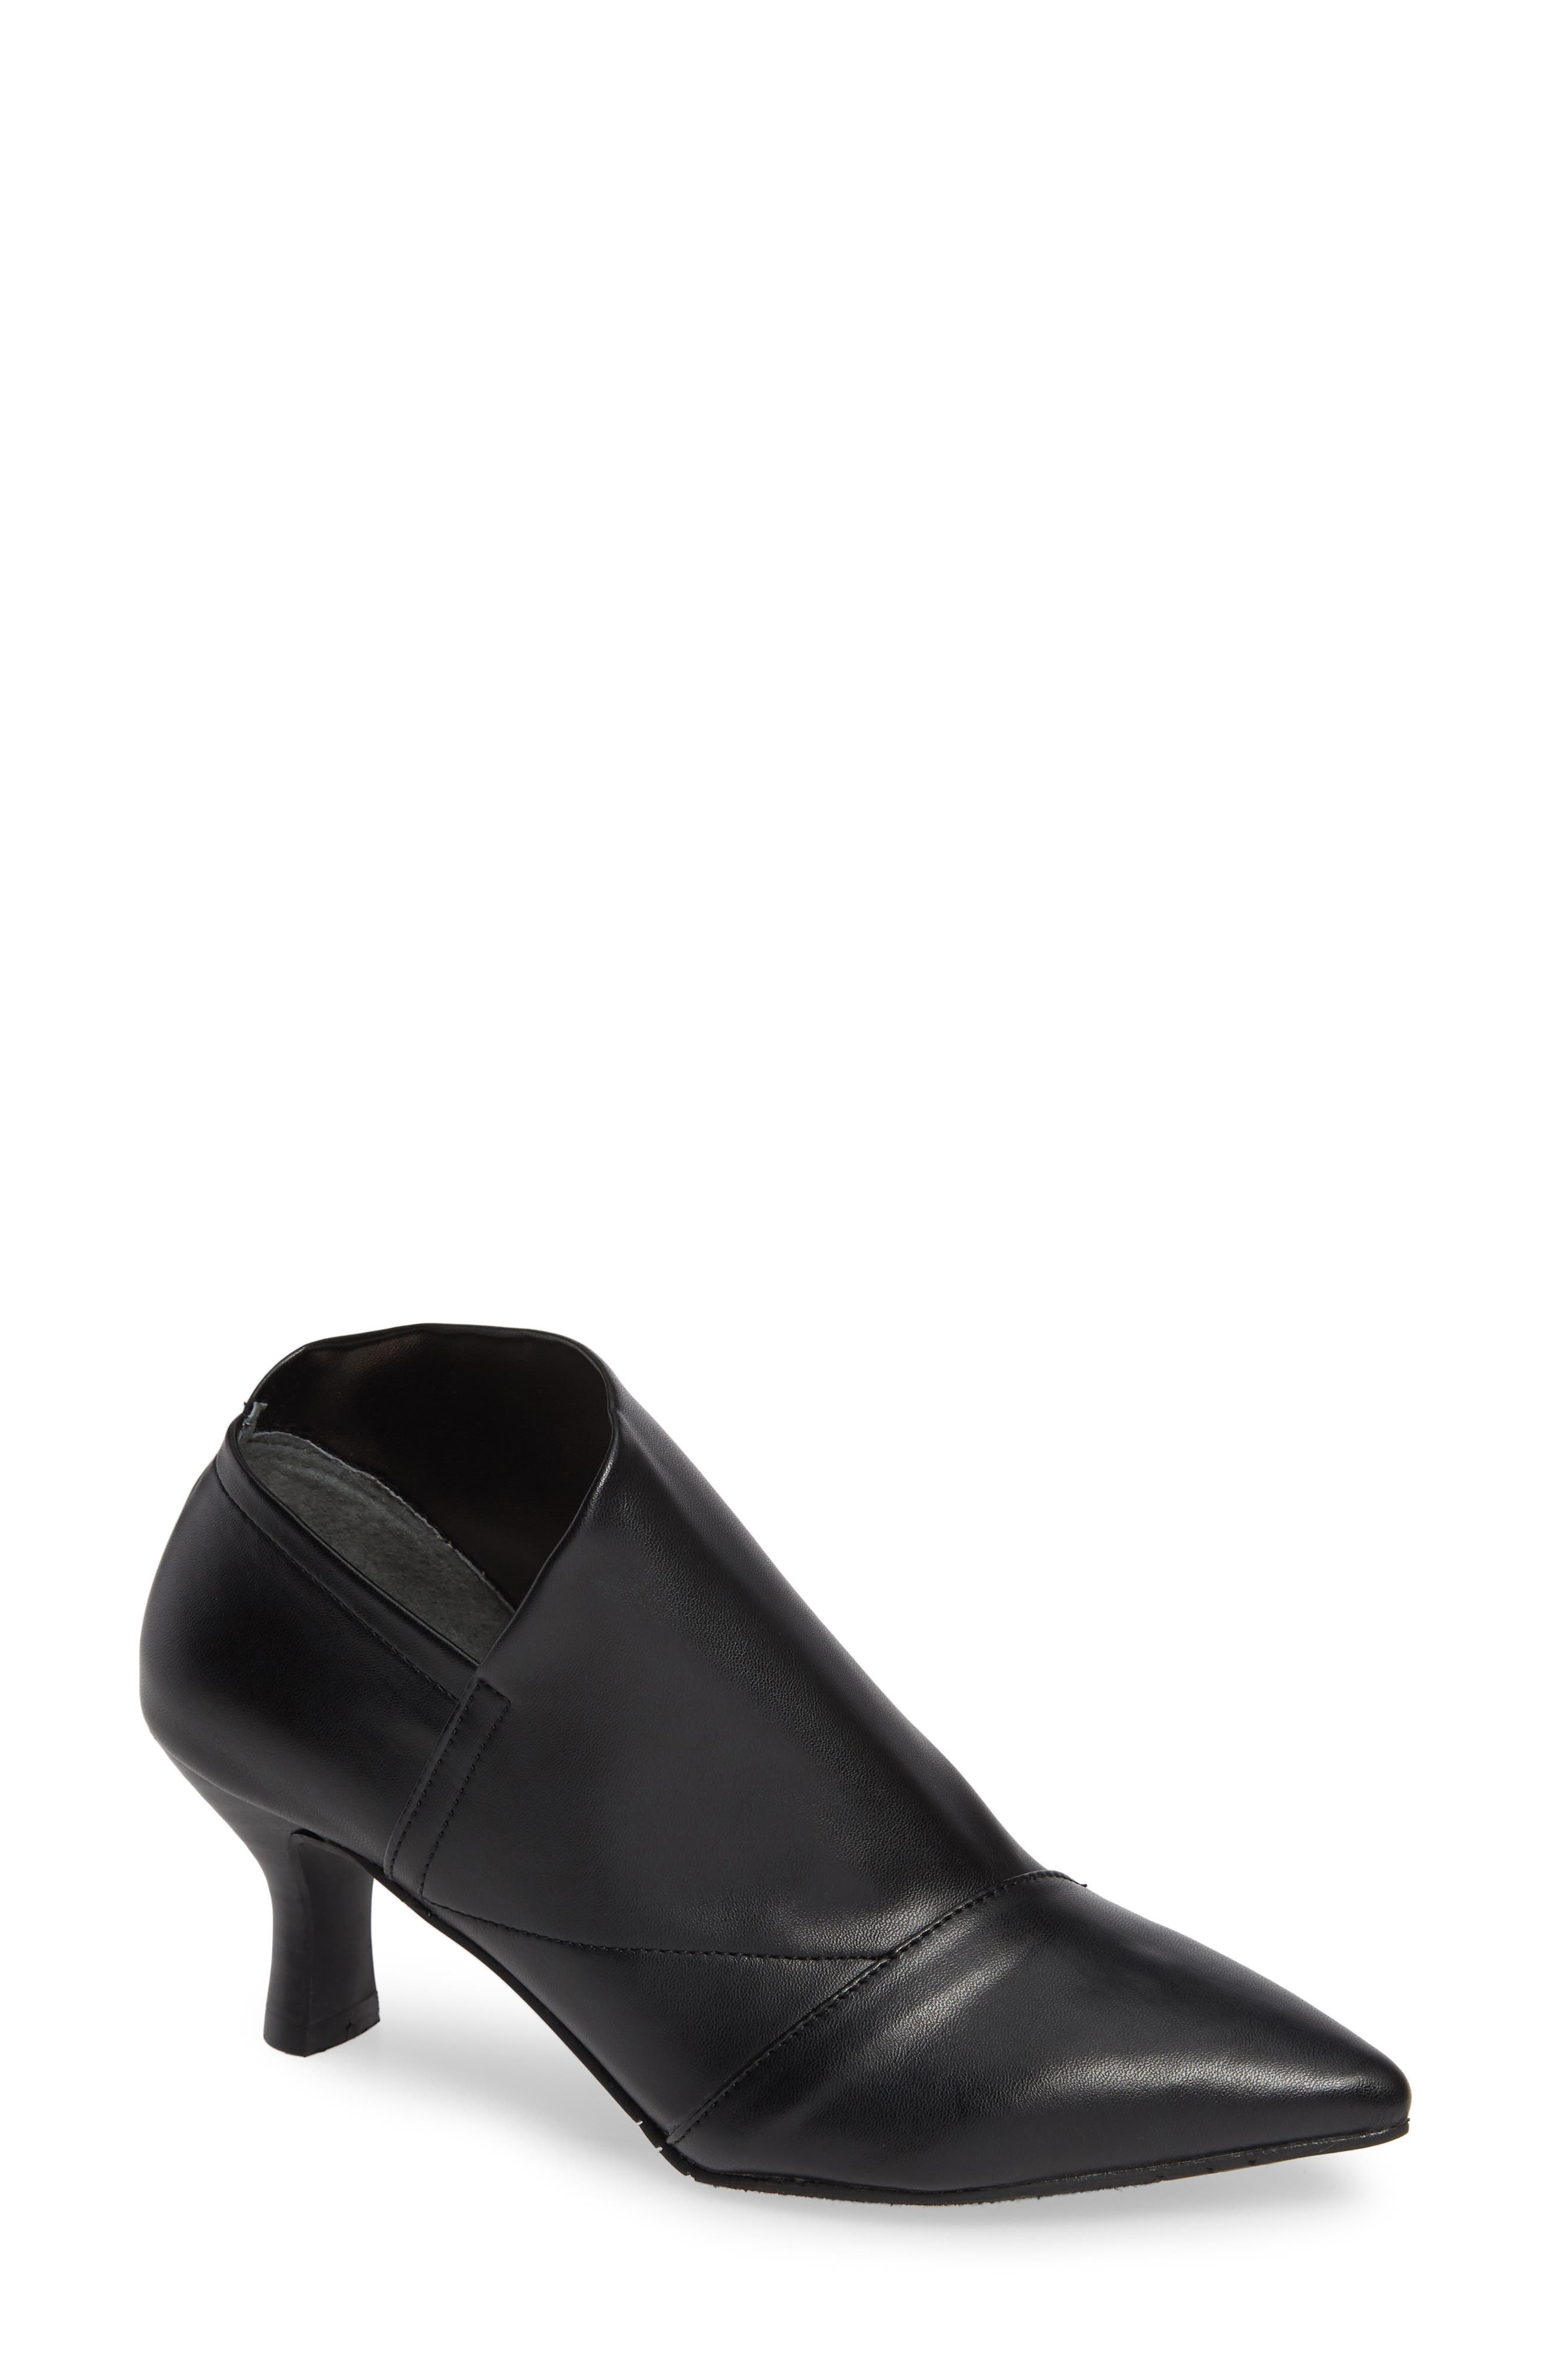 Hayes Pointy Toe Bootie,                             Main thumbnail 1, color,                             BLACK LEATHER